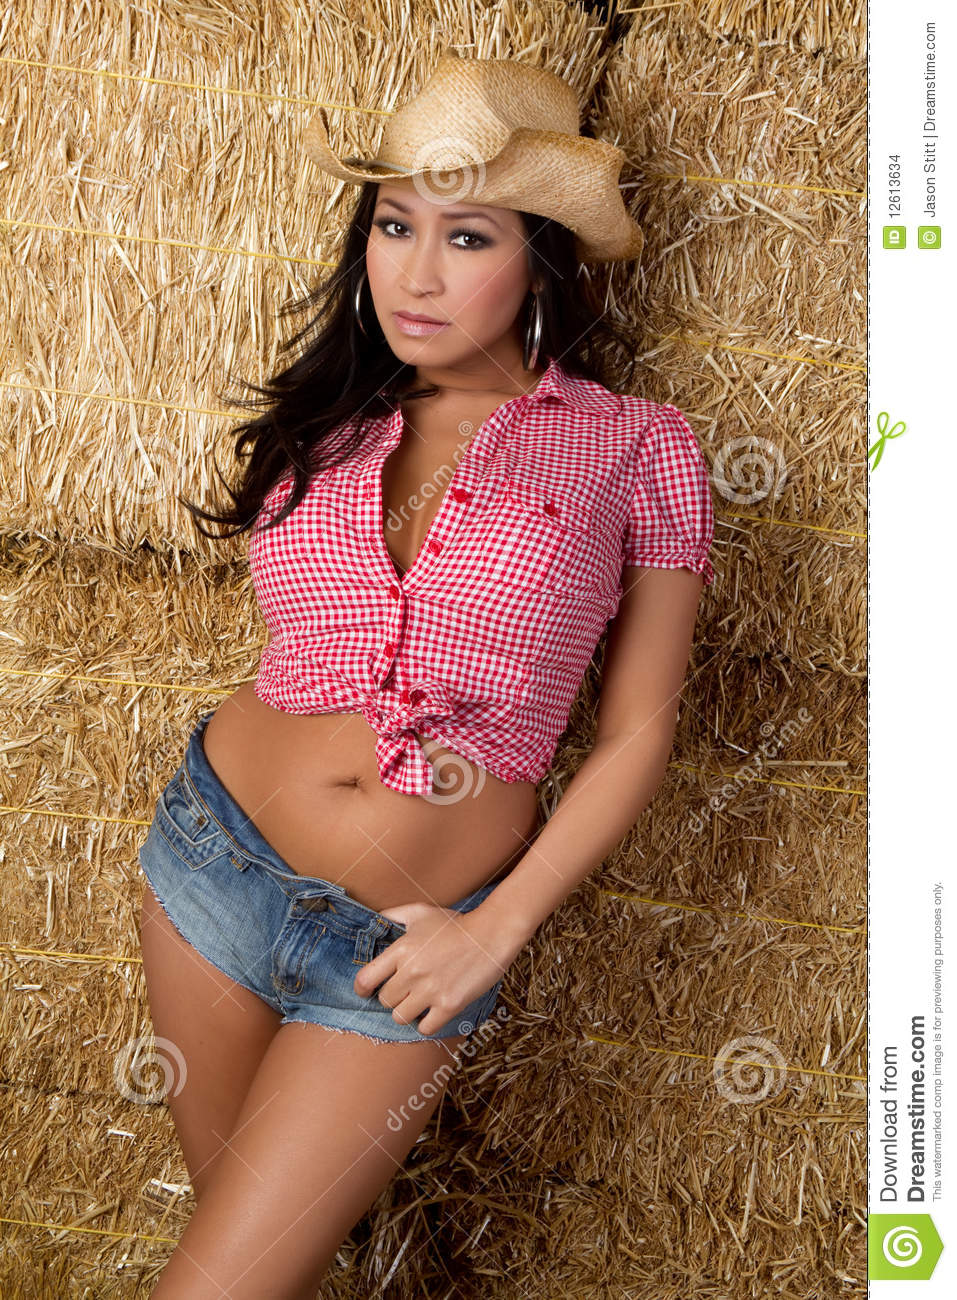 Sexy cowgirl shorts